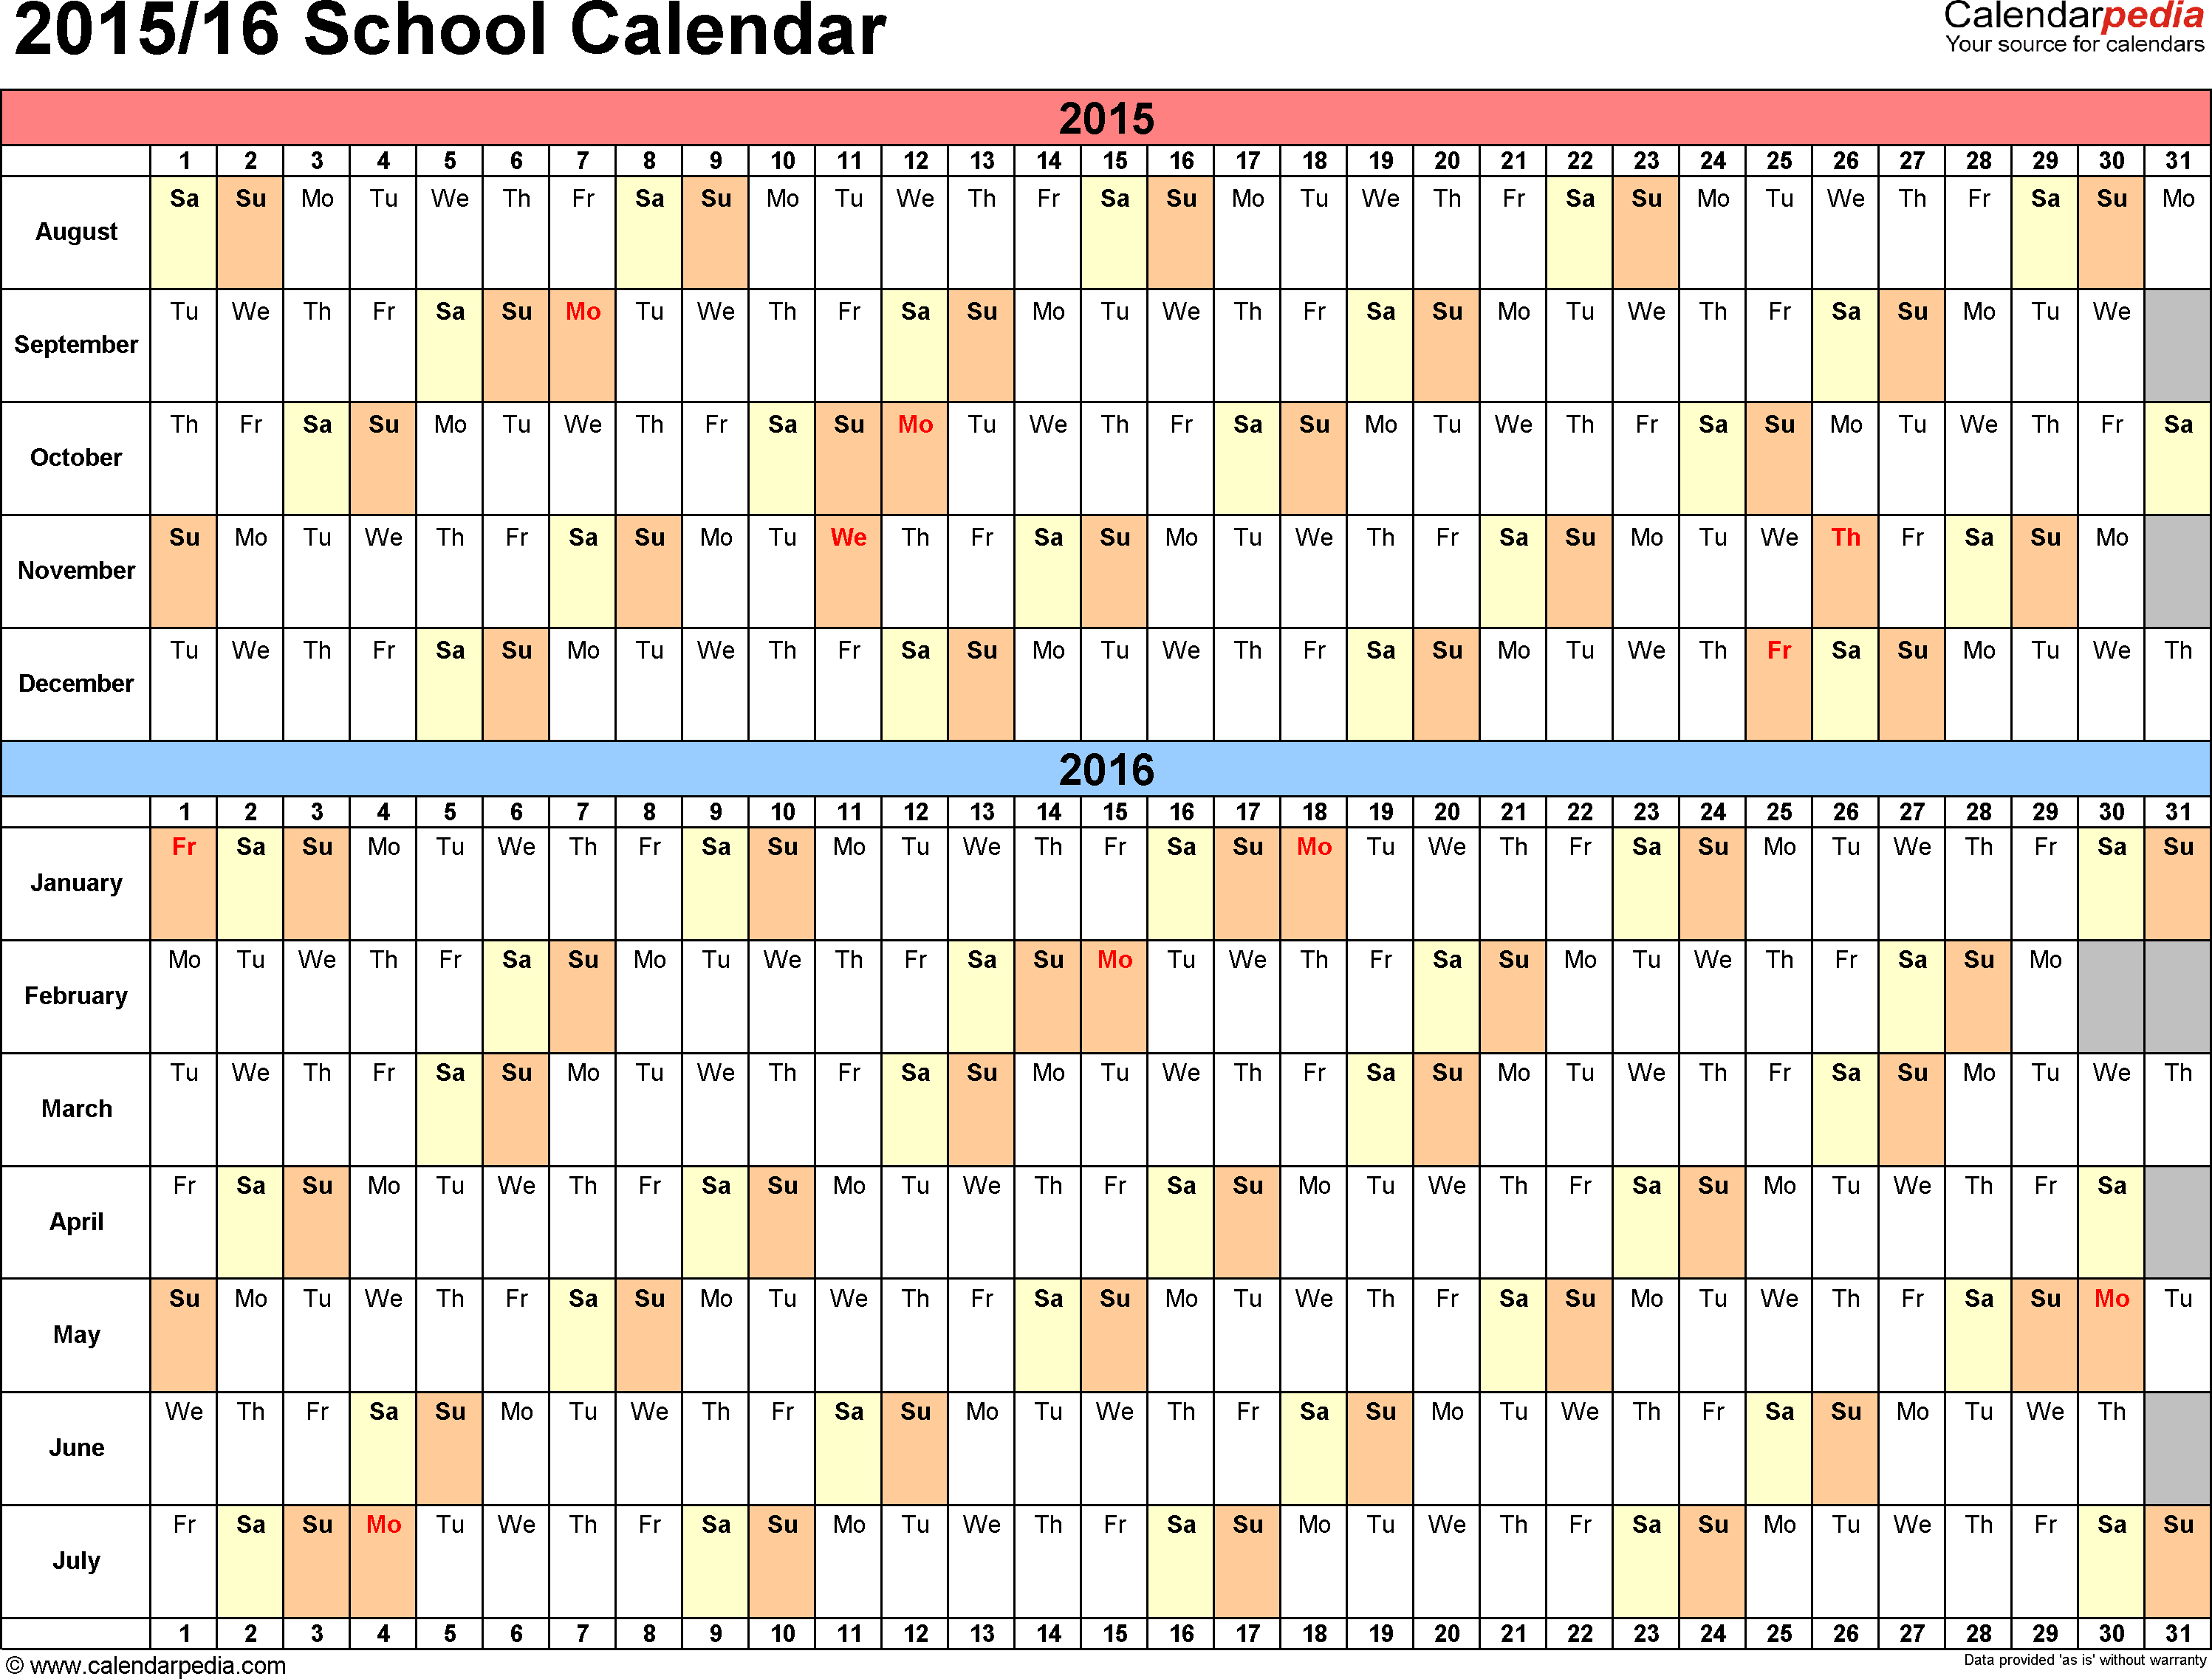 Template 2: School calendar 2015/16 for Excel, landscape orientation, days horizontally (linear), 1 page